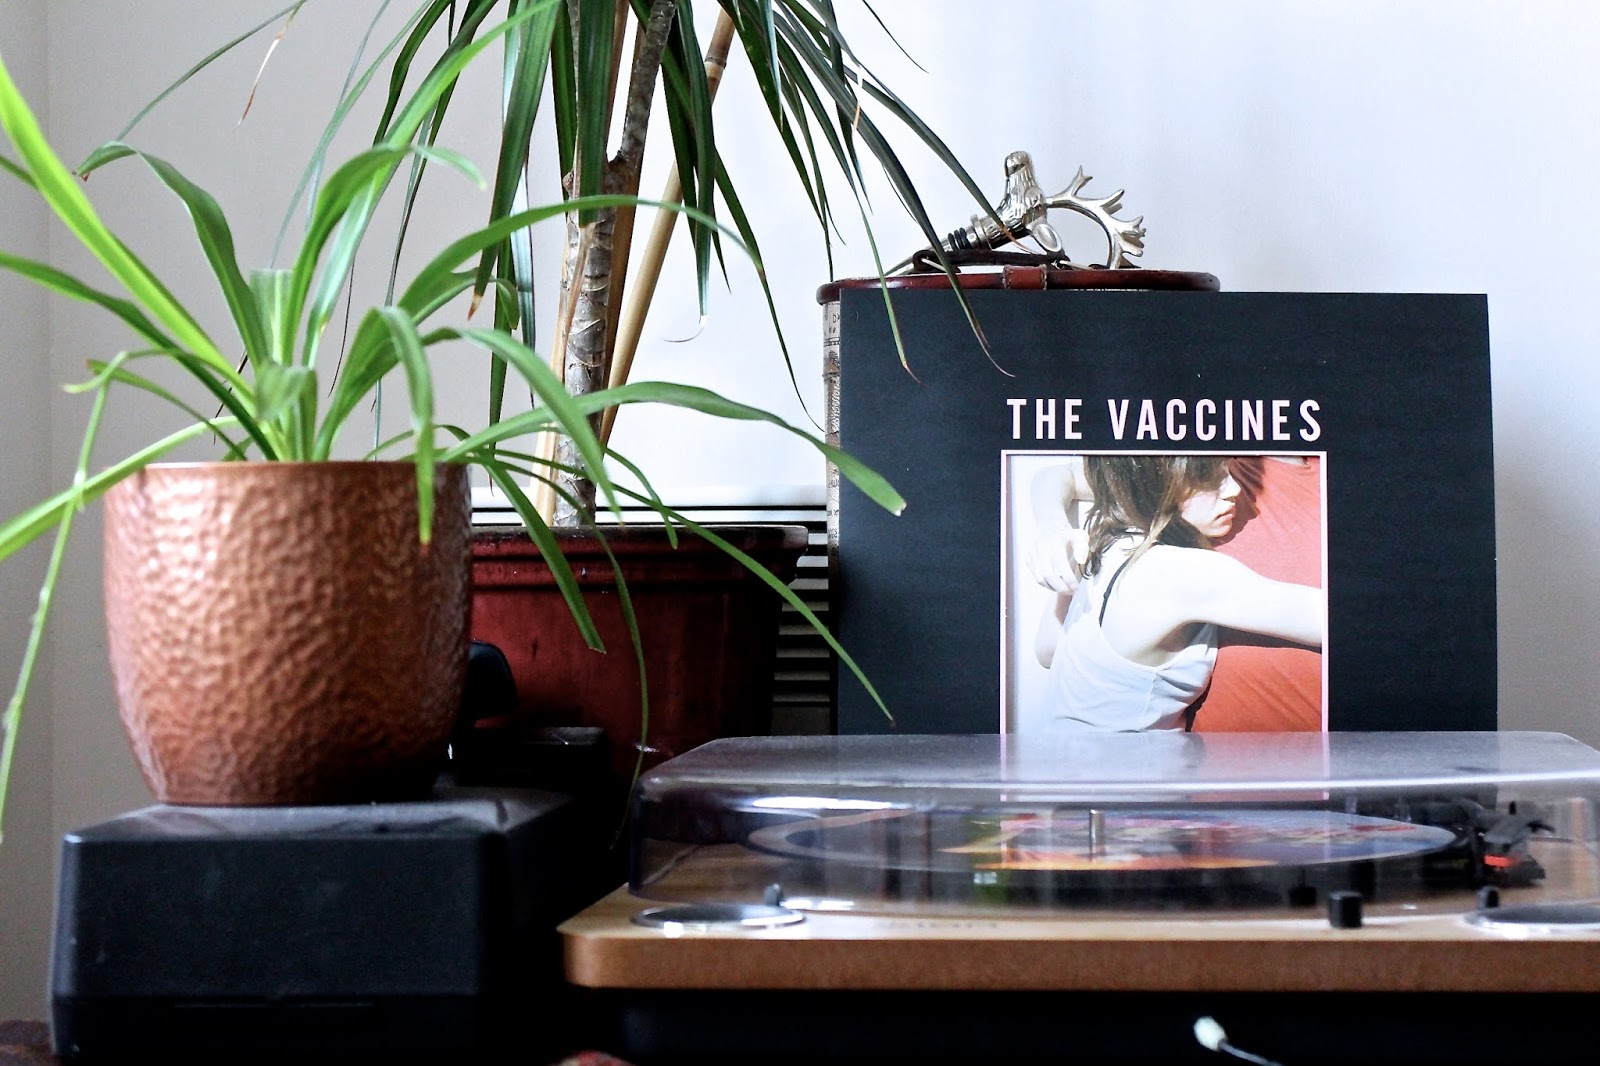 The Vaccines vinyl, record player and plant - hipster aesthetic